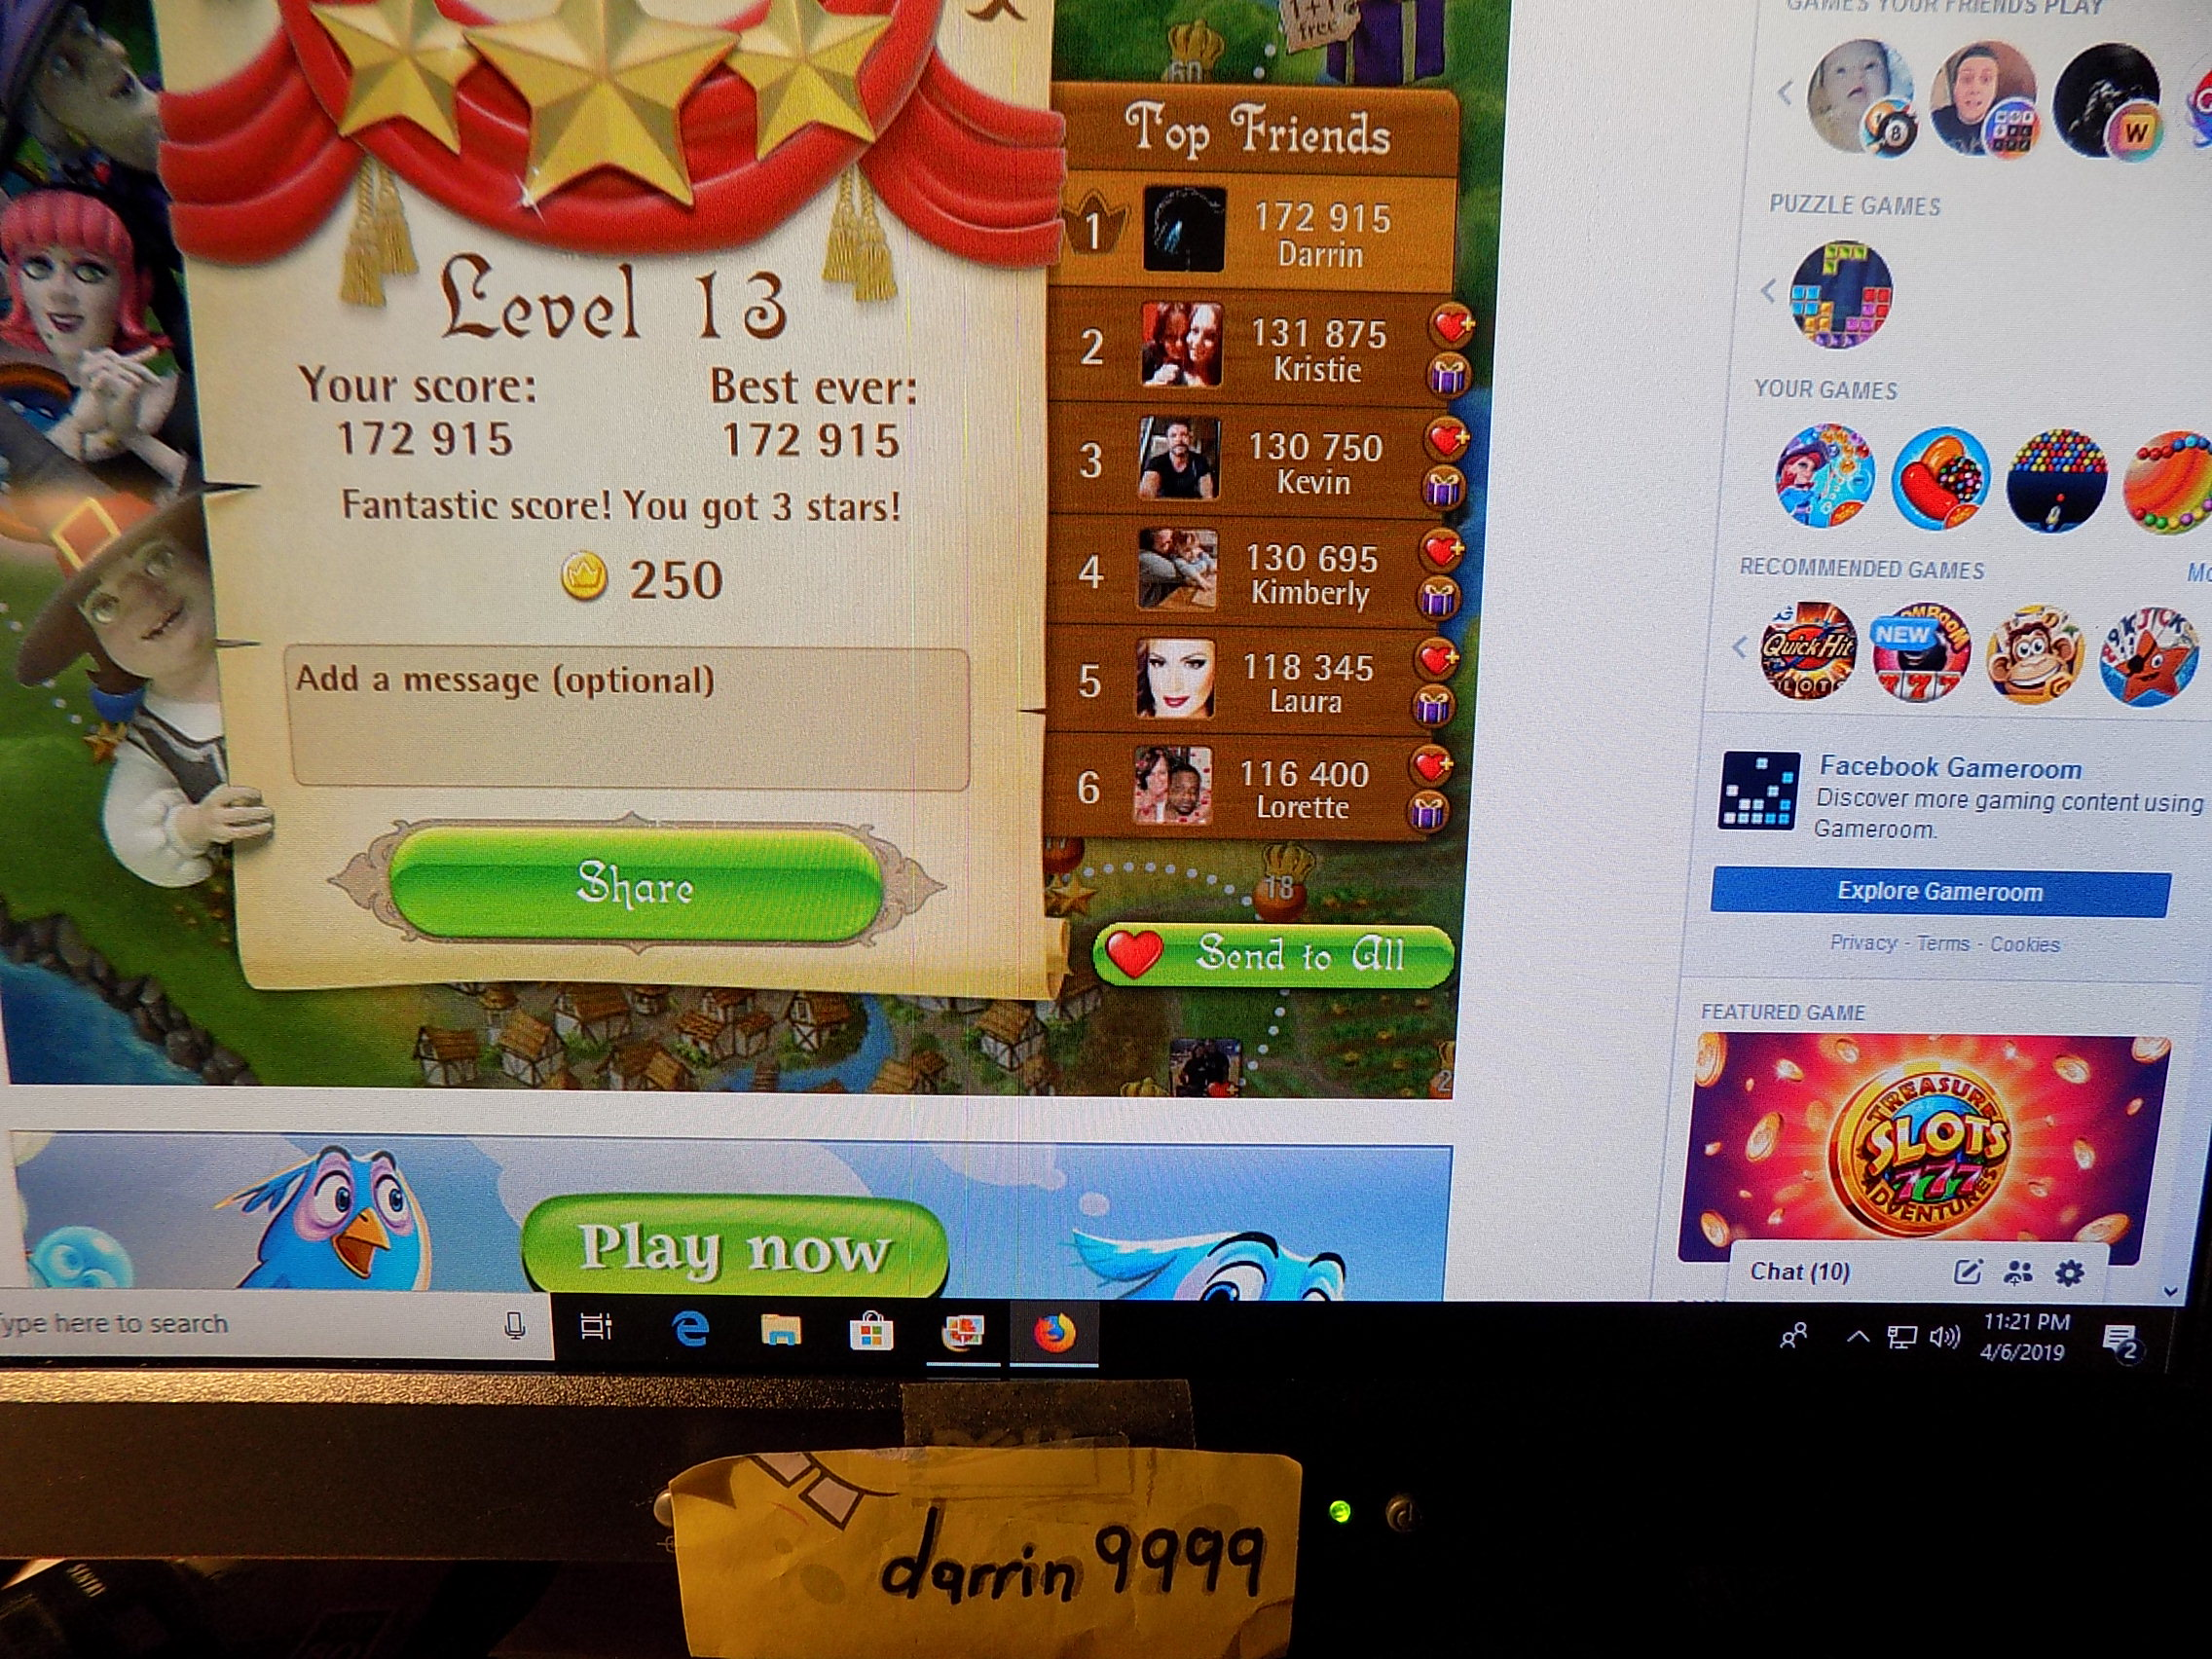 darrin9999: Bubble Witch Saga: Level 13 (Web) 172,915 points on 2019-04-06 22:37:27